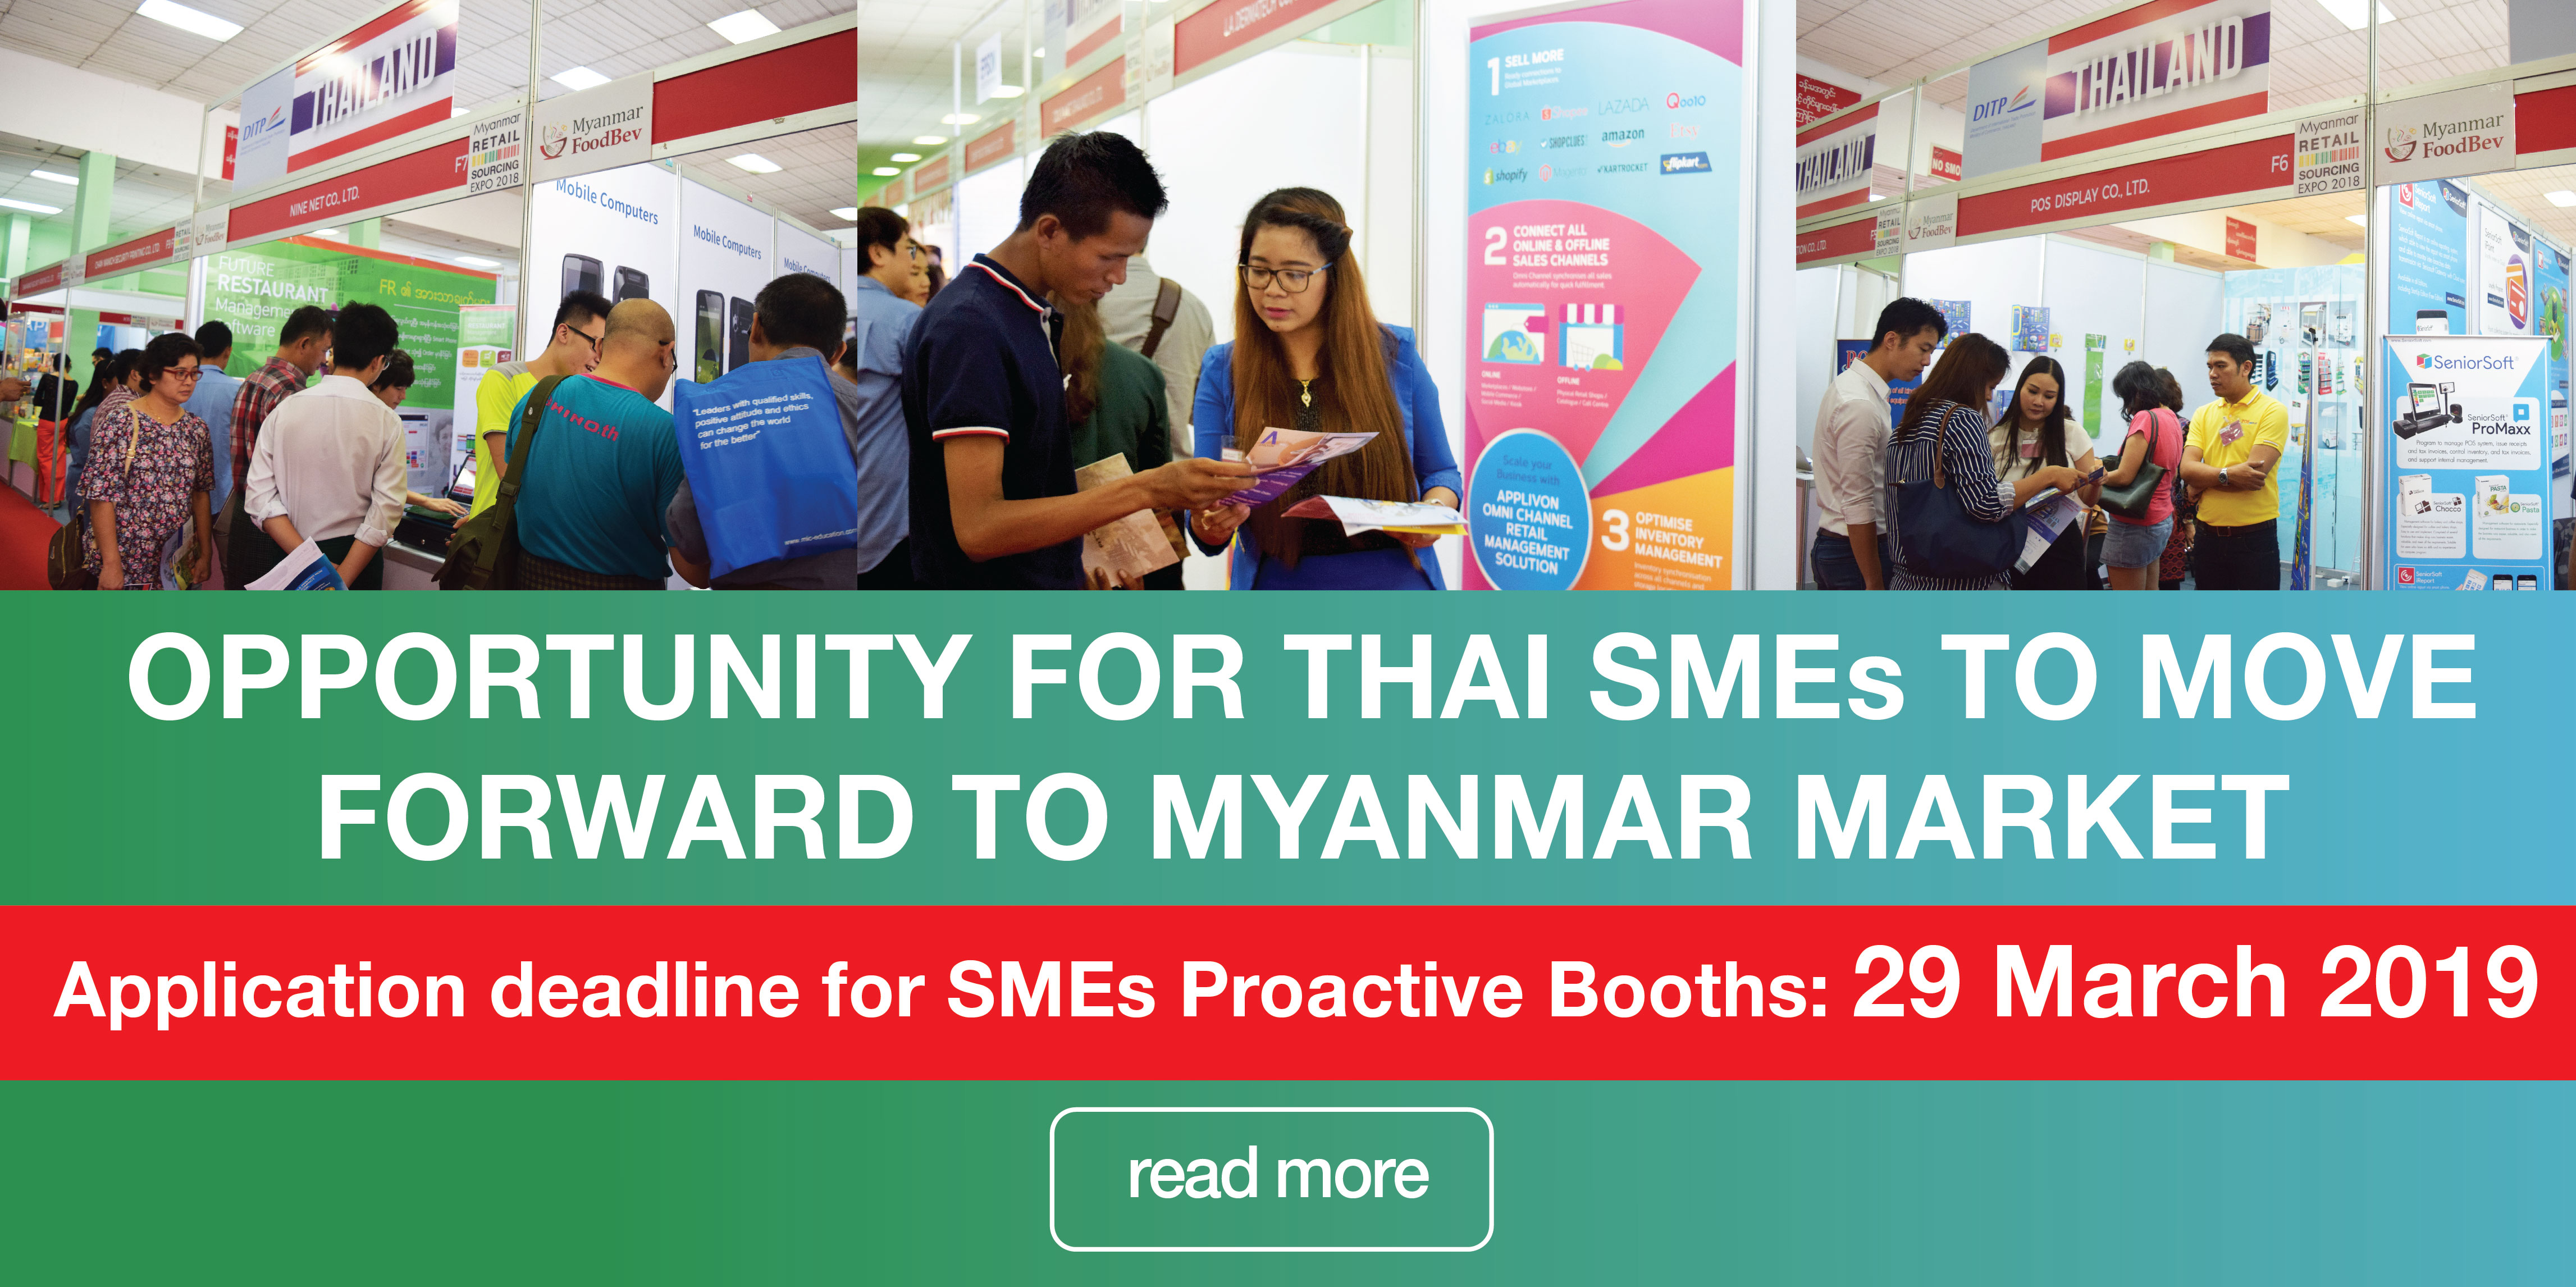 Opportunity for SMEs